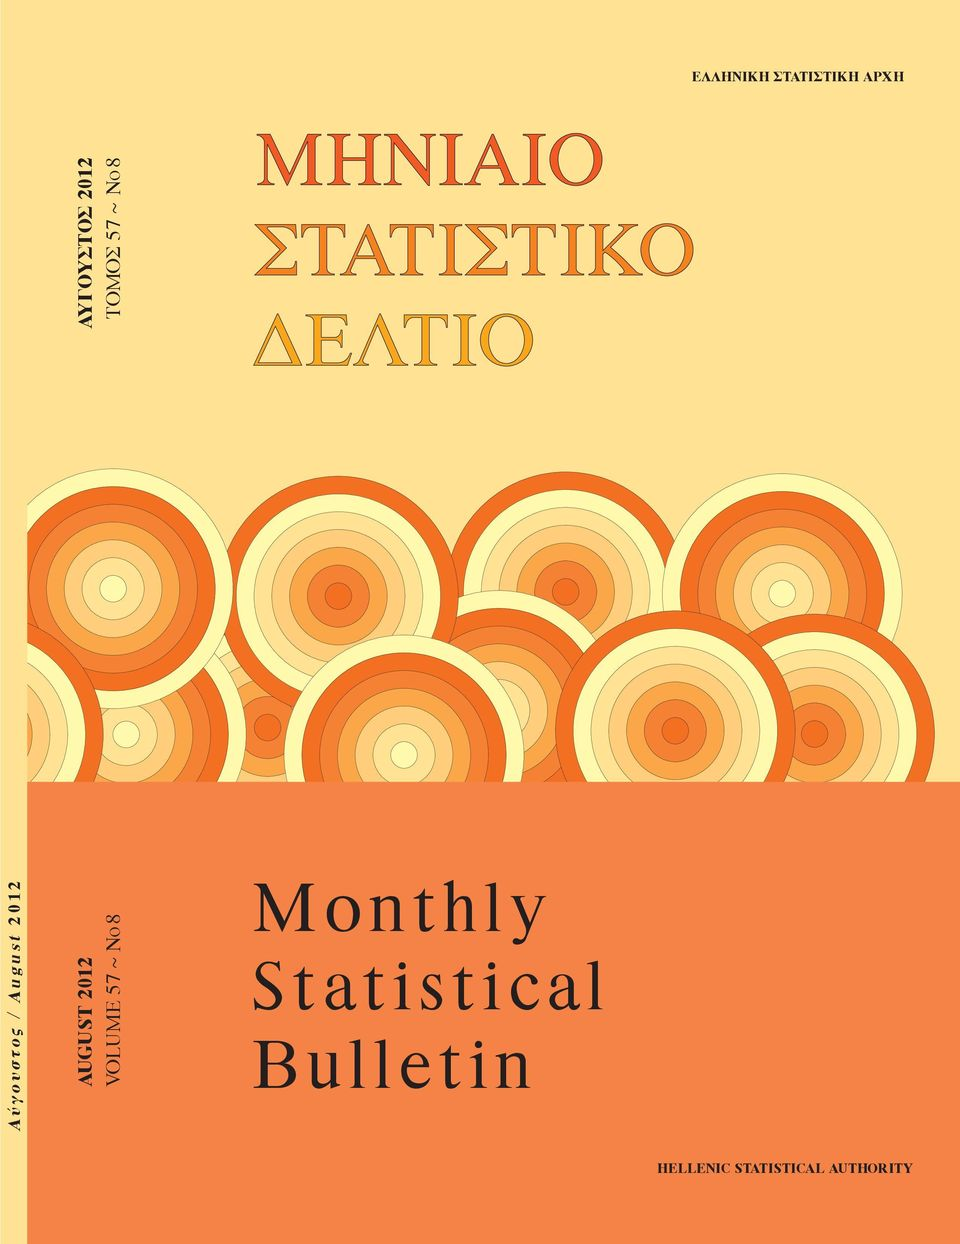 Nο8 AUGUST 2012 VOLUME 57 ~ Nο8 Monthly